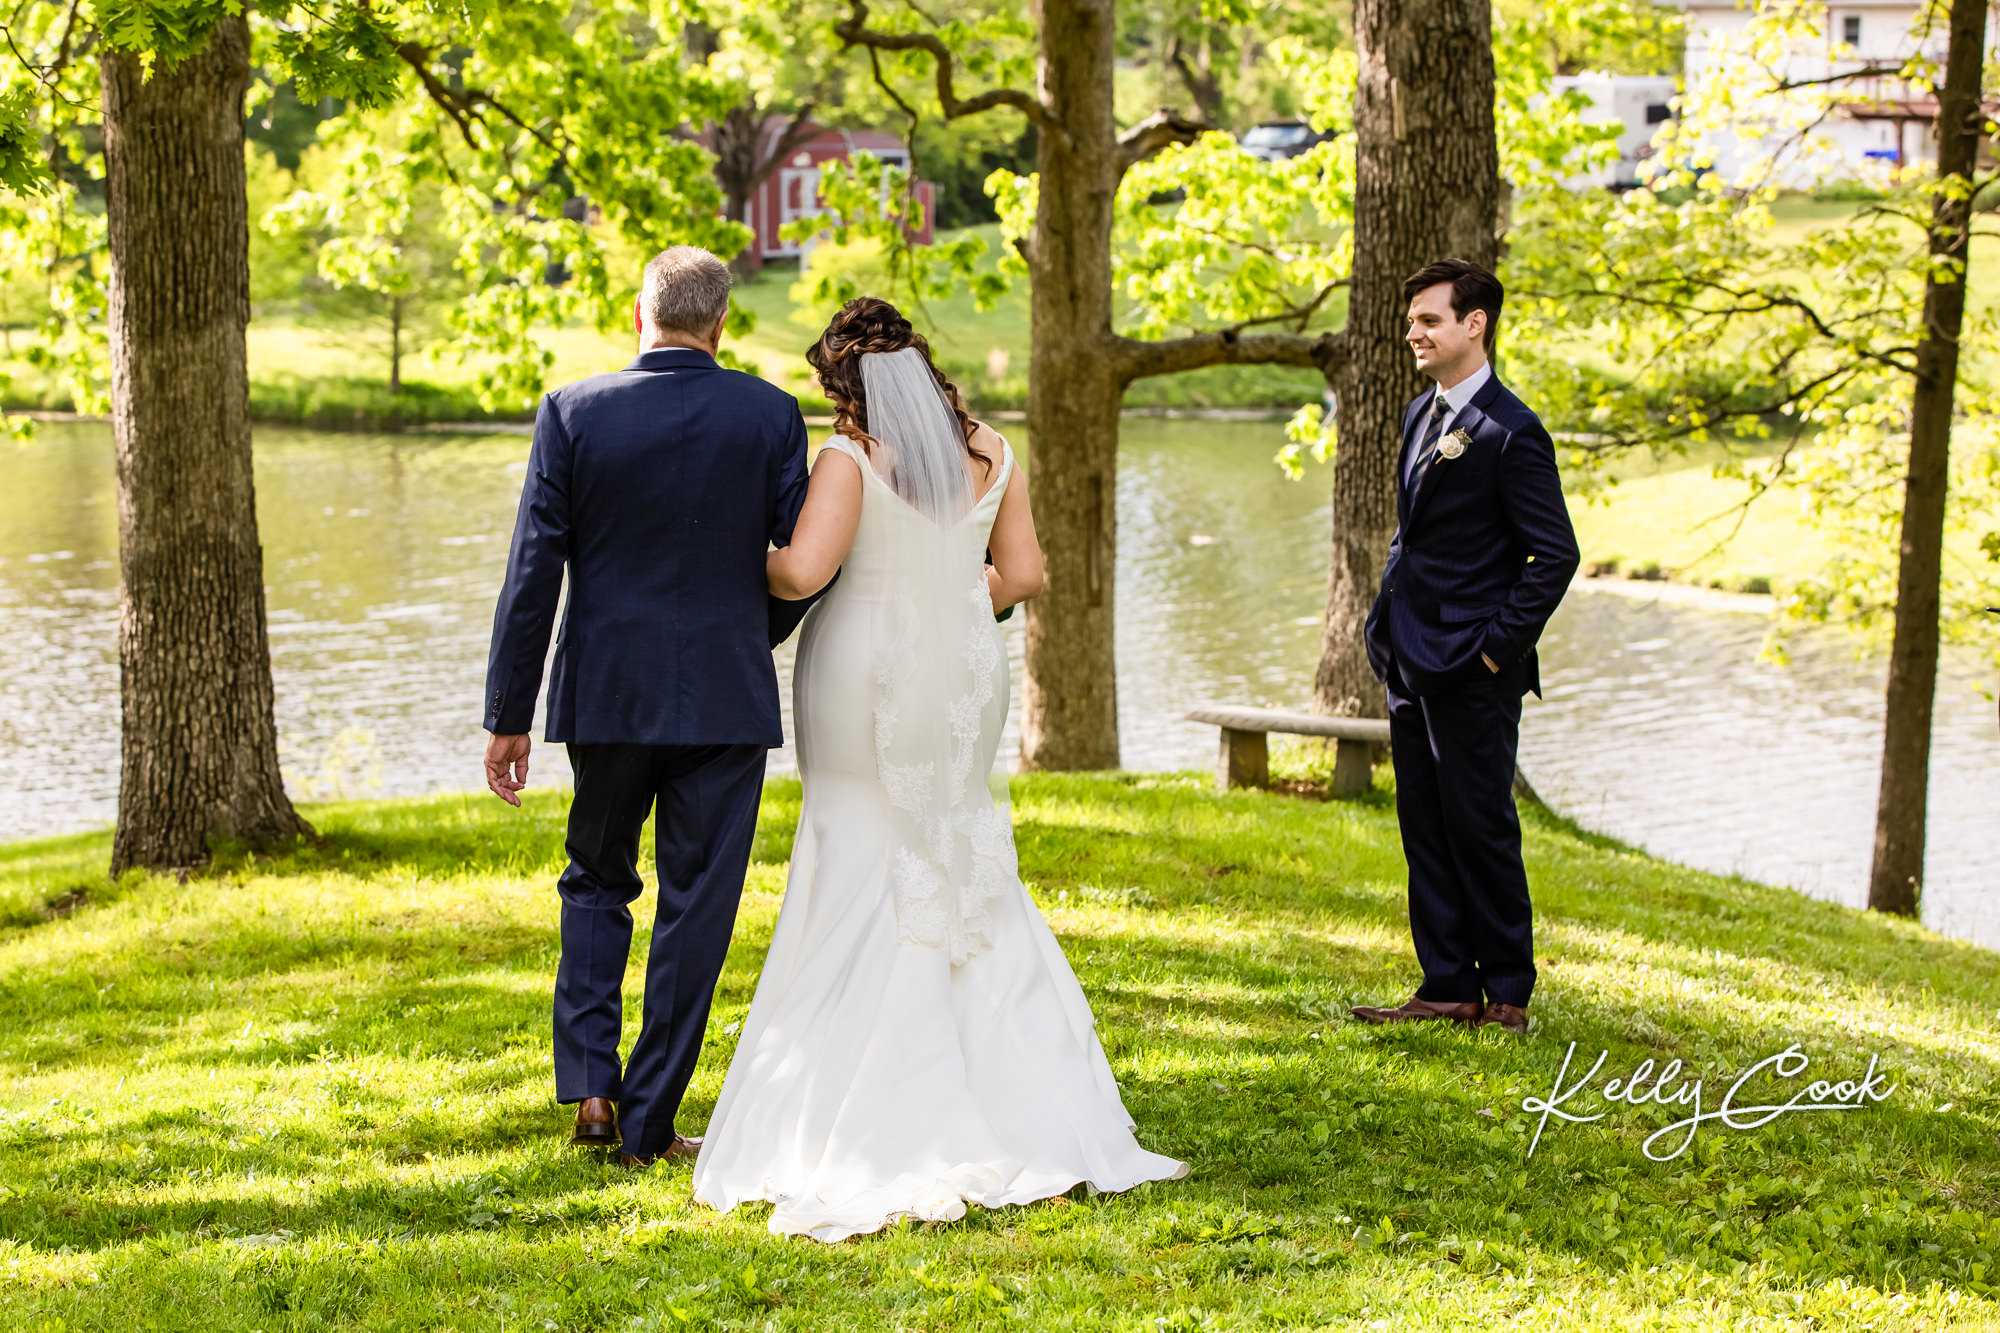 A bride and her father walking down the aisle for a backyard micro wedding